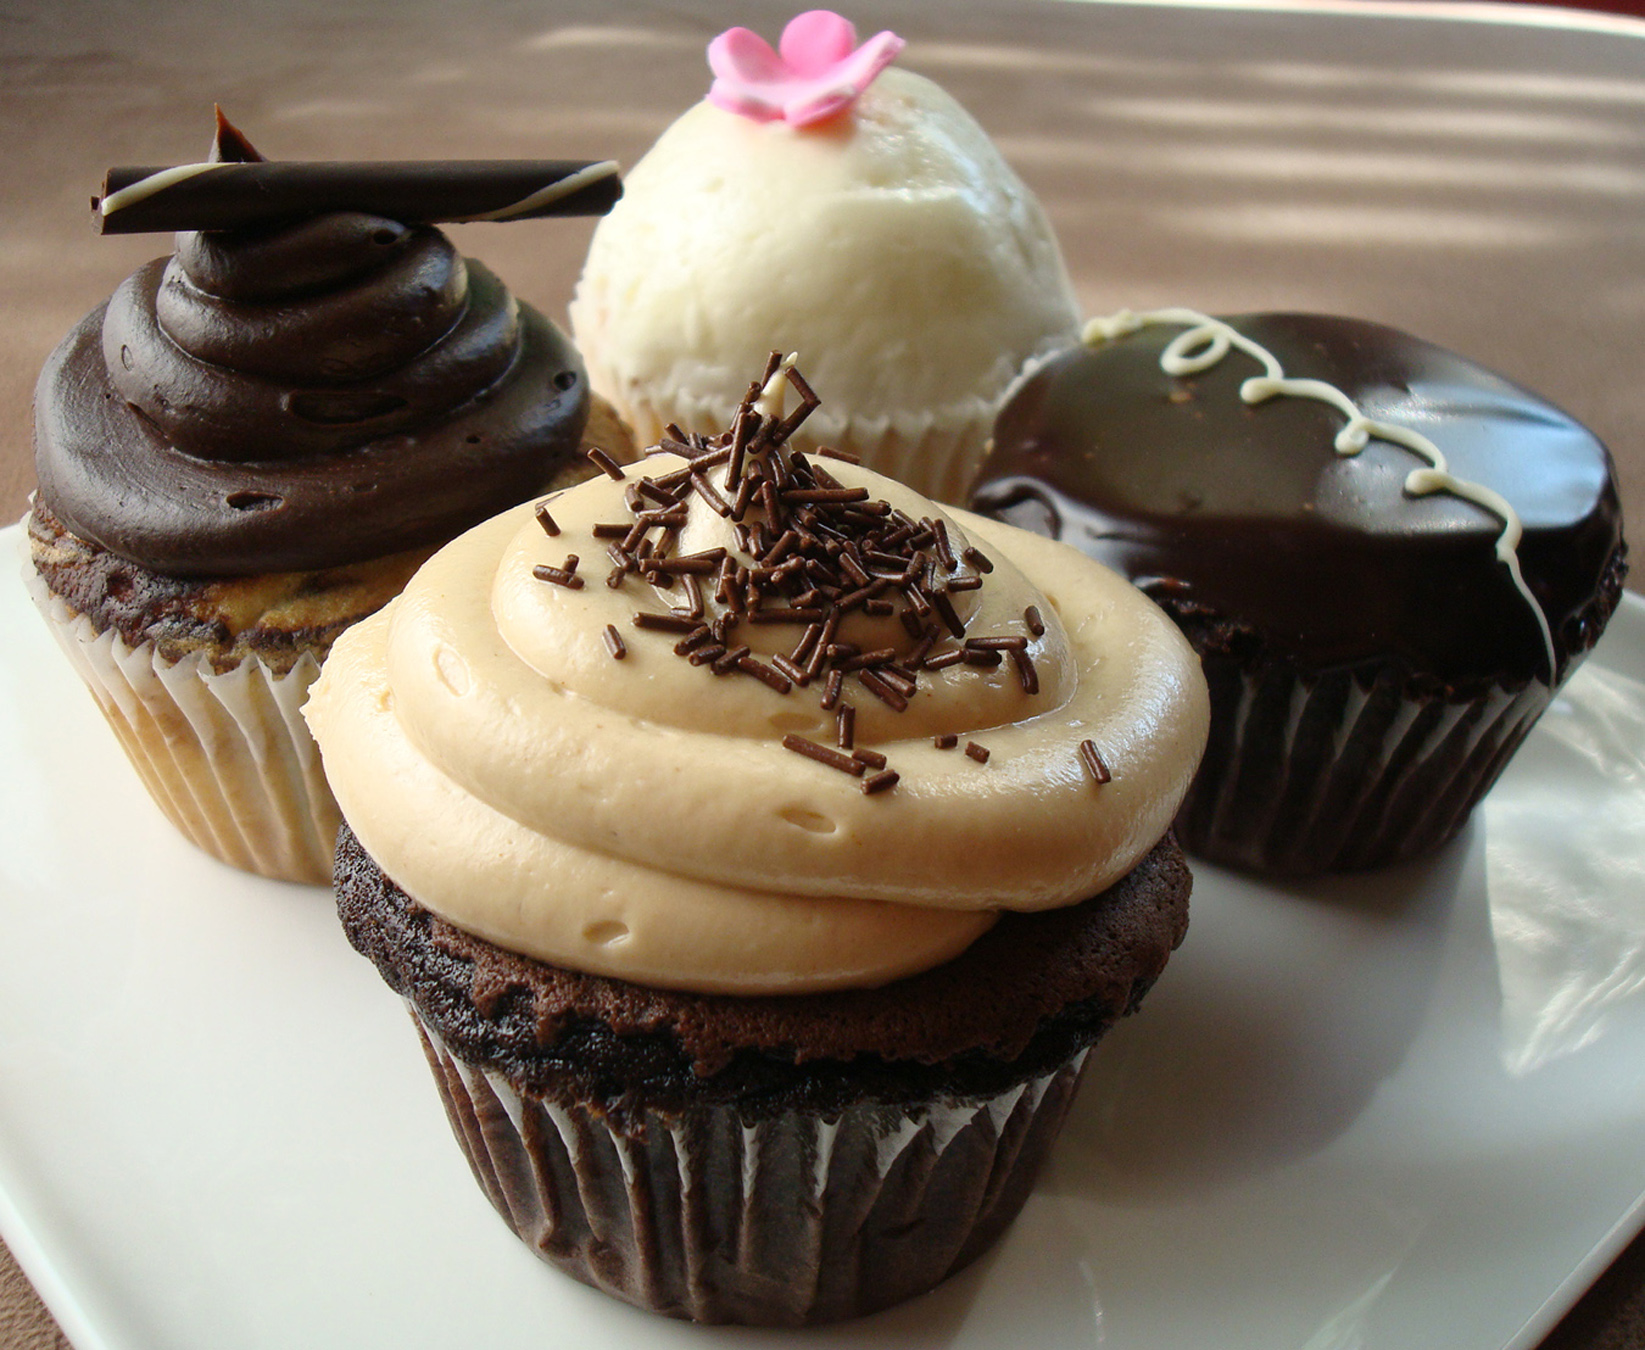 Clockwise from back: Strawberry-filled vanilla, chocolate, peanut butter-filled chocolate, and marble cupcakes.